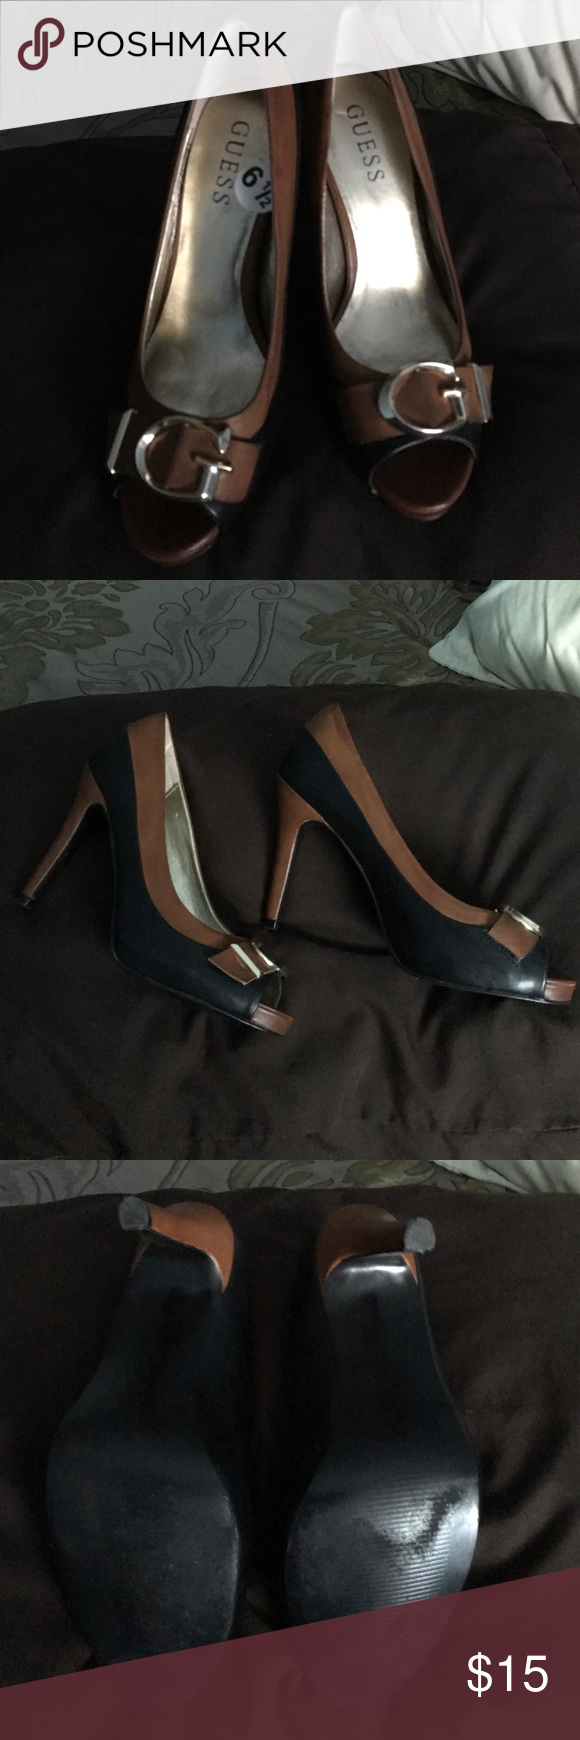 💥WEEKEND SALE💥Guess Heels Guess 2 tone black and brown peep toe heels size 6.5.They are in good condition💥PRICE IS FIRM💥 GUESS Shoes Heels